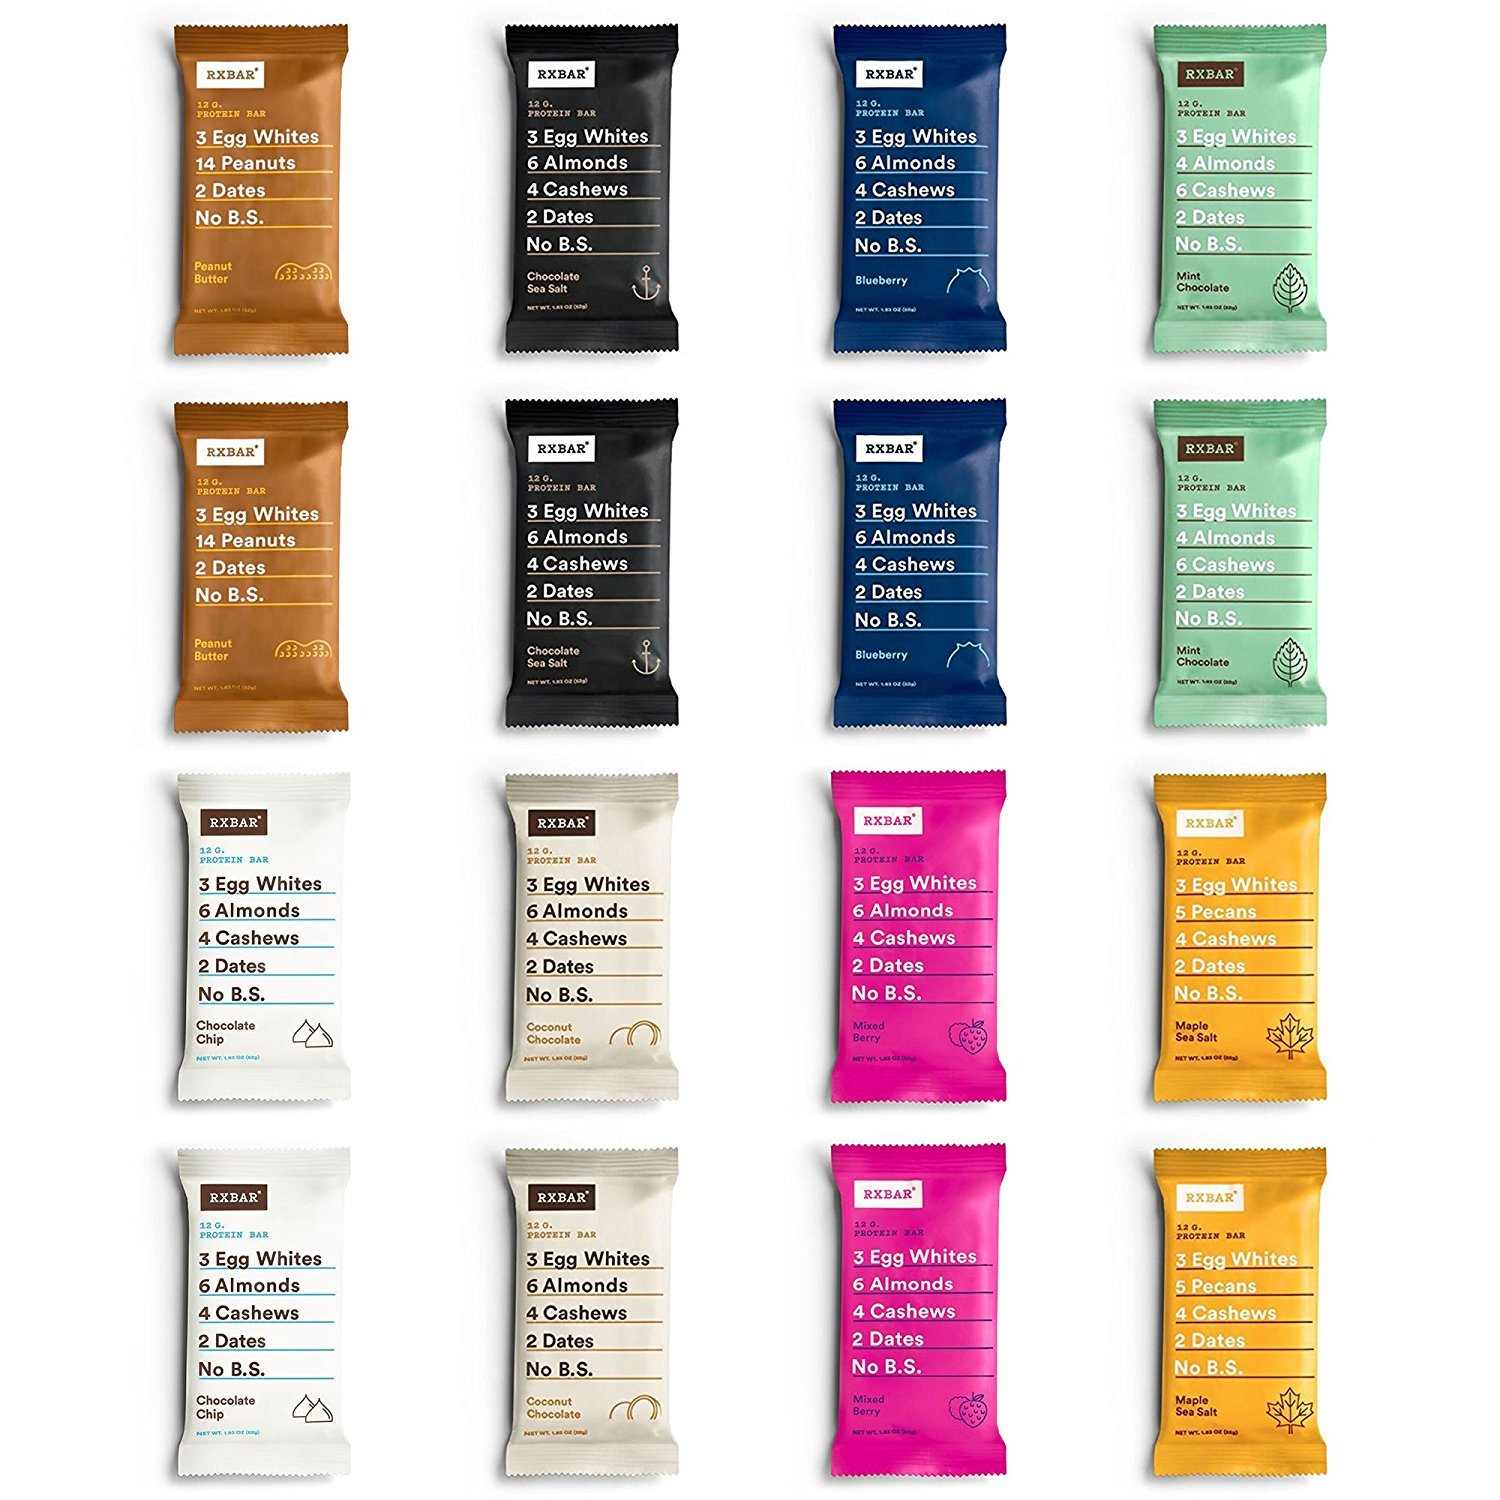 RxBar Real Food Protein Bars 8 Flavor Variety Pack, 2 Each, 16 Total Count by RXBAR